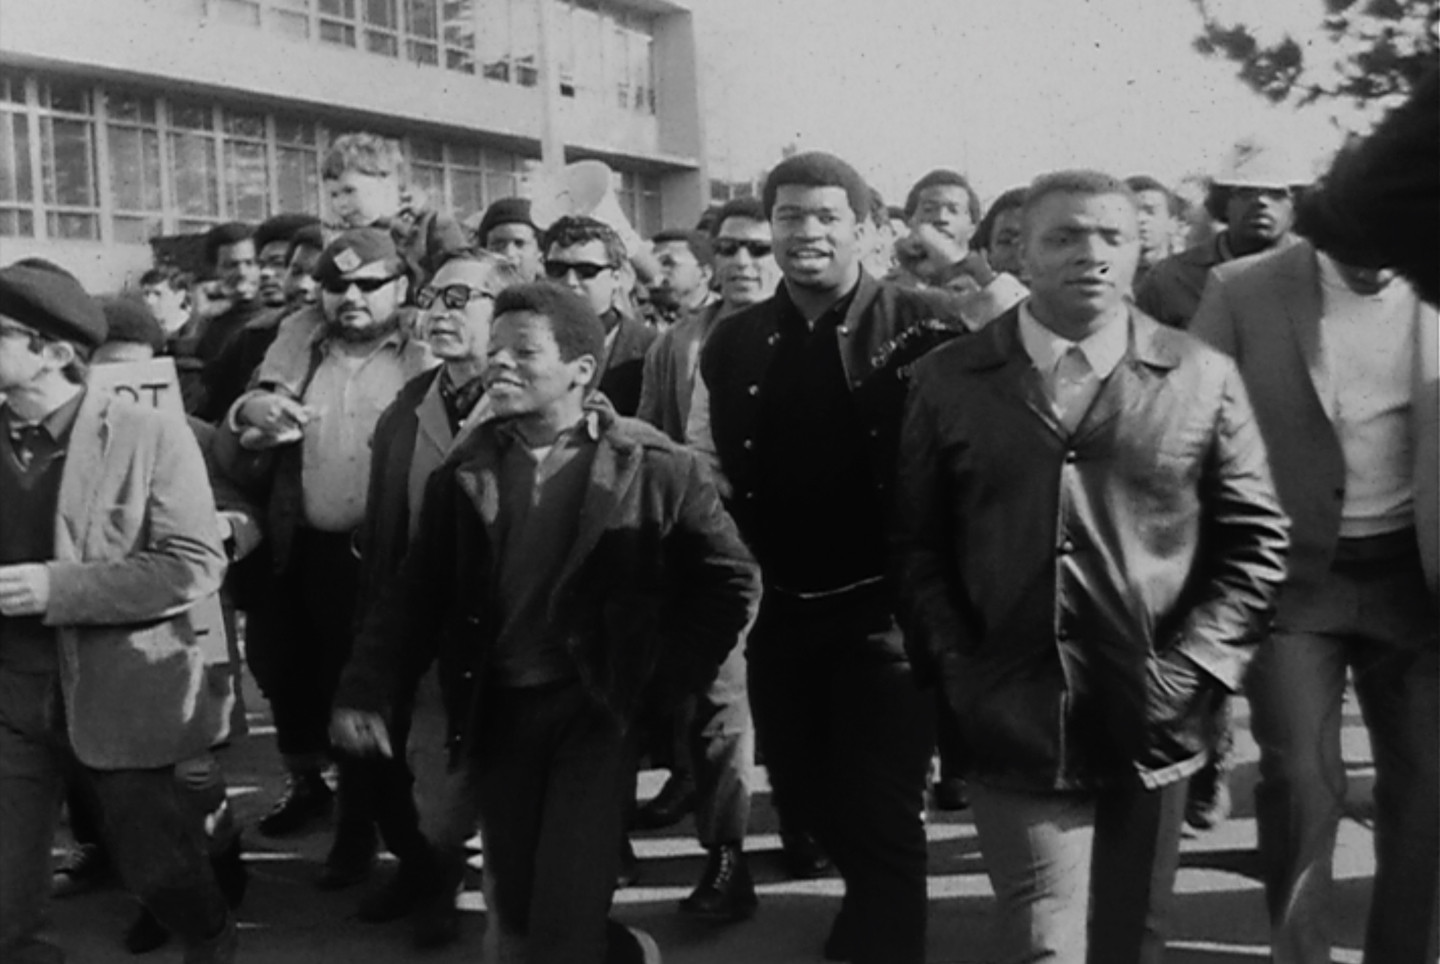 A group of community leaders march in solidarity with the Black Students Union at San Francisco State on Dec. 4, 1968.